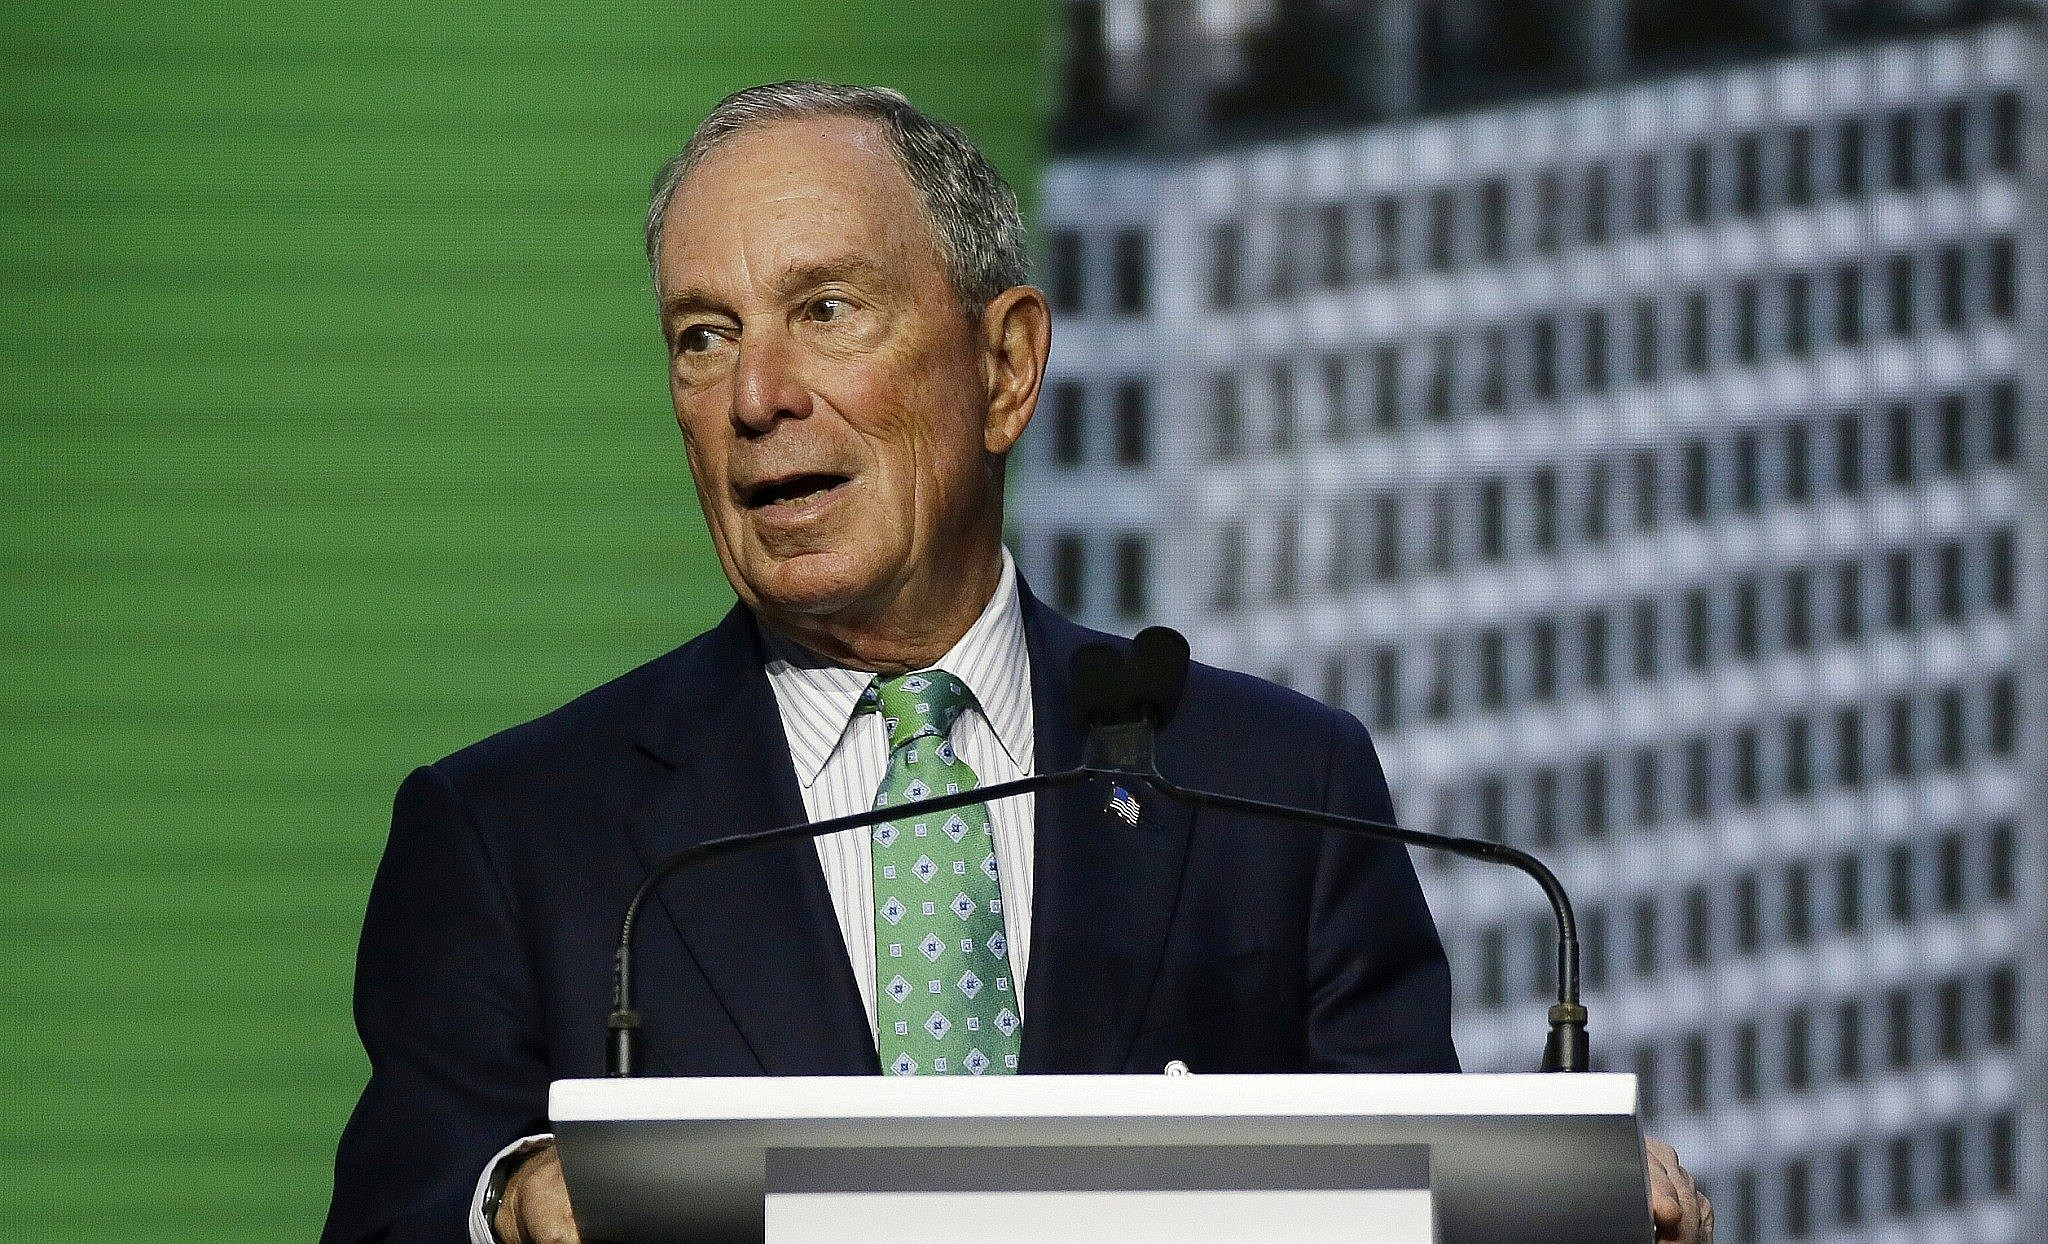 VISION? Mike Bloomberg Re-Registers as a DEMOCRAT